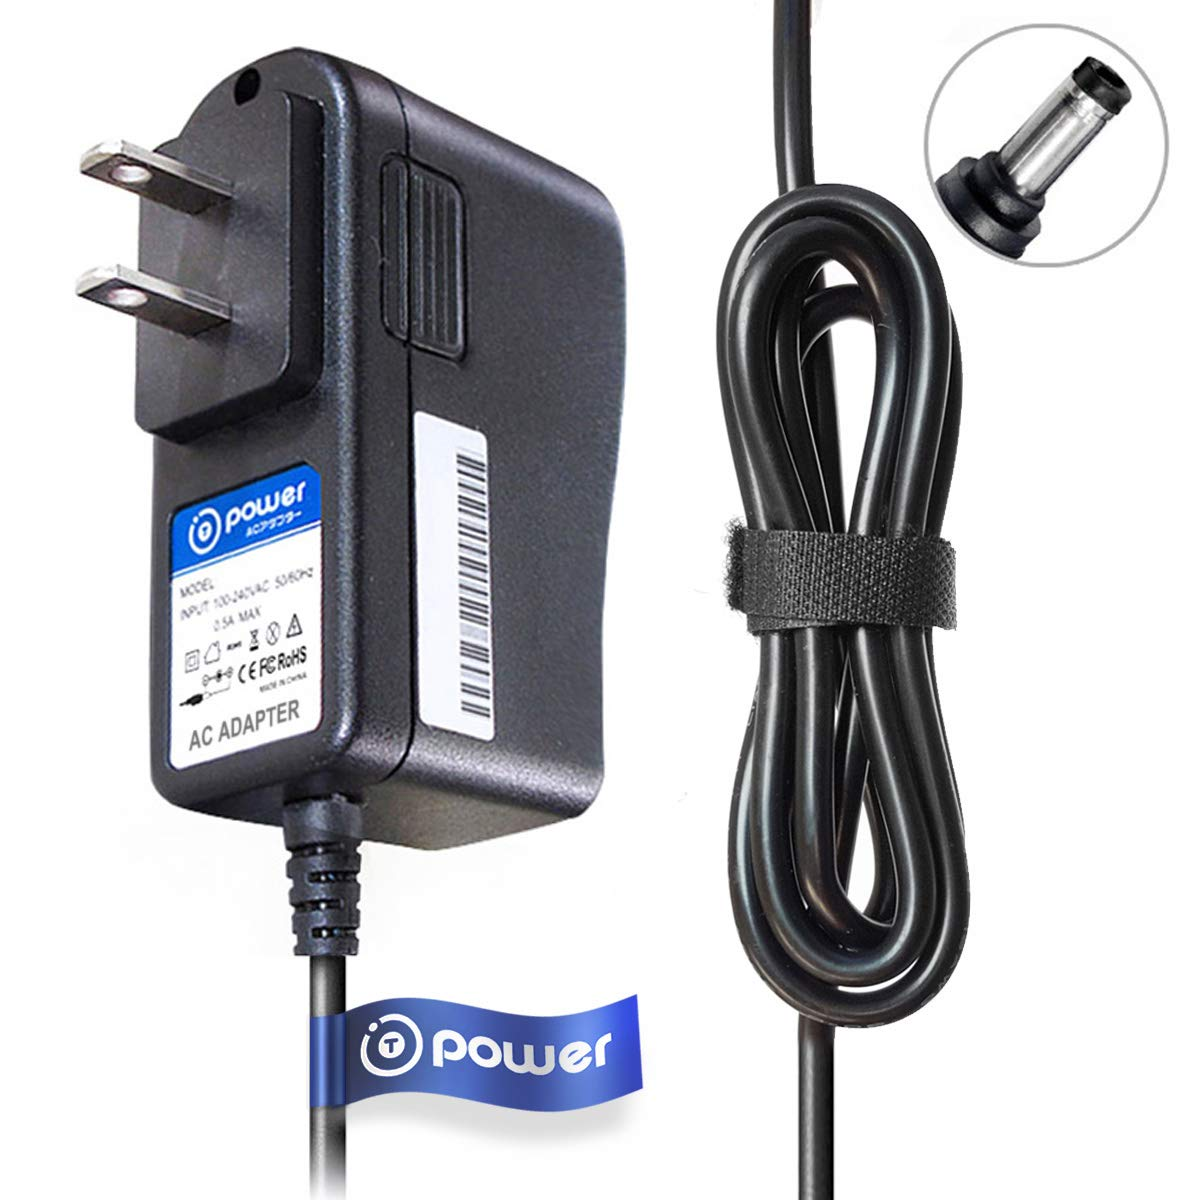 T-Power Ac Adapter for Marpac Marsona 1288A 1288A-I 1280 Deluxe Sound Conditioner Charger Power Supply